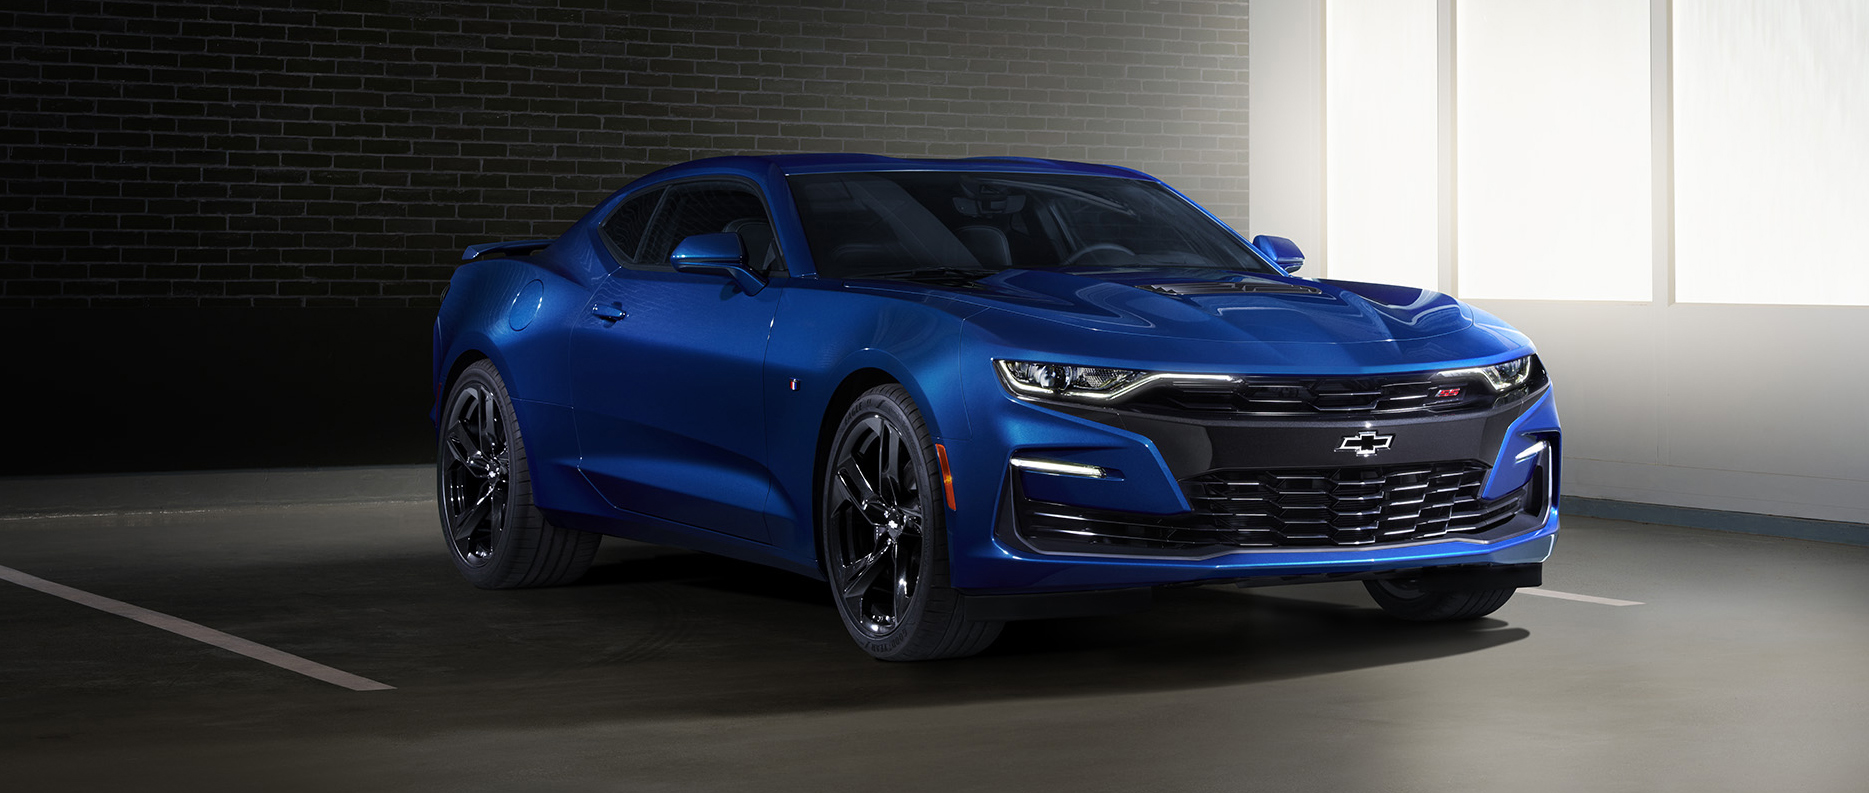 Chevrolet Reveals The Refreshed Look For The 2019 Chevy